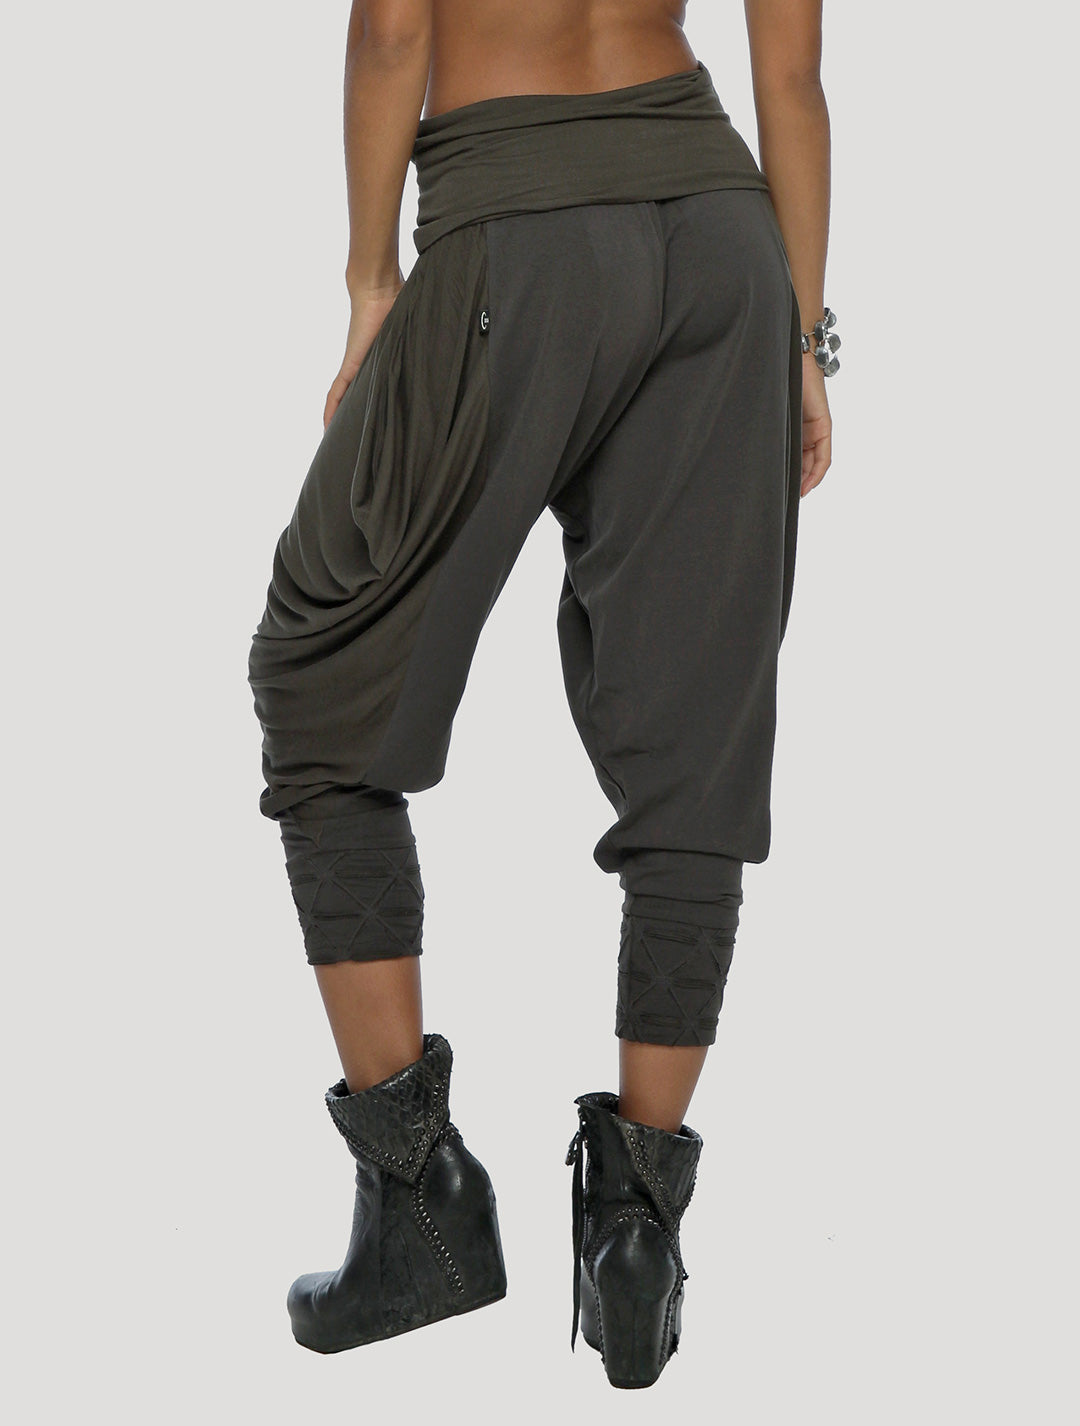 Kimo Pants - Psylo Fashion